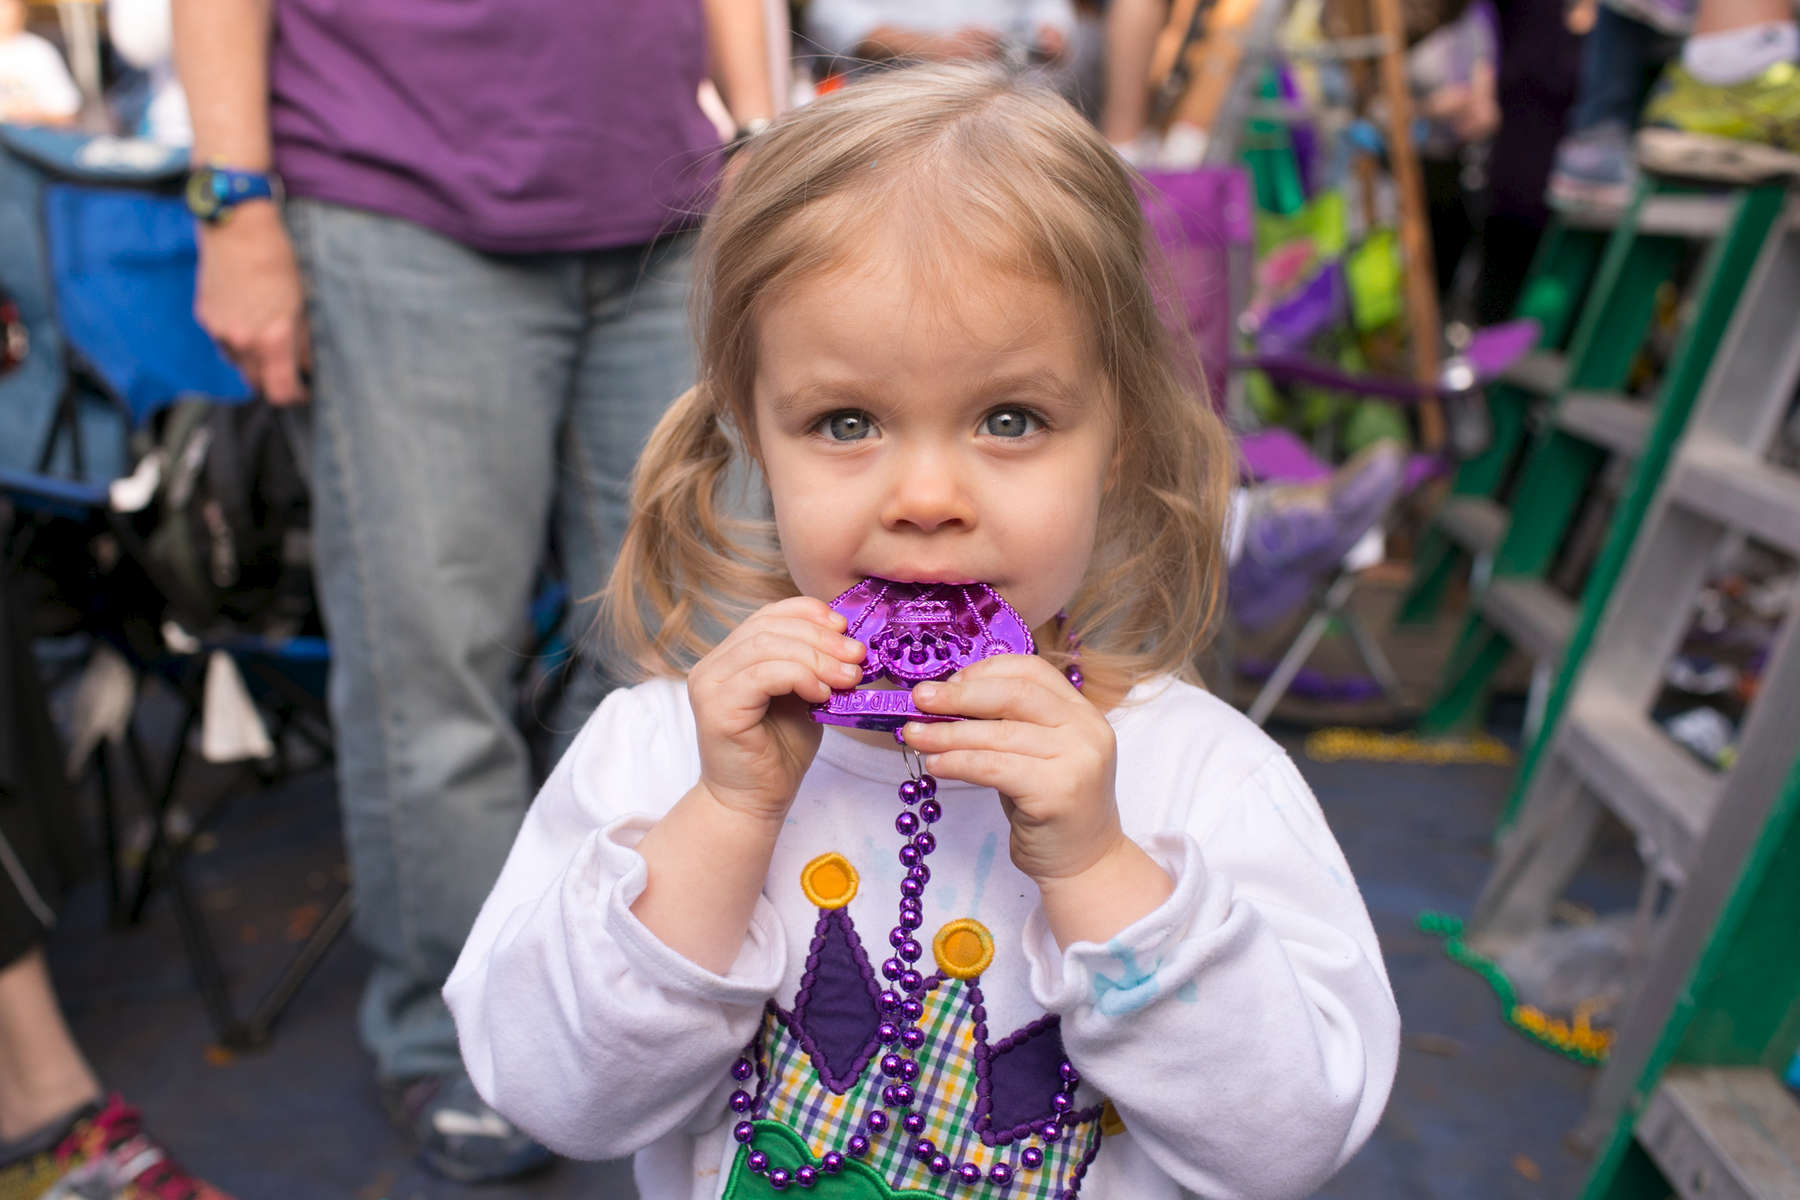 Mardi Gras 2017 on February 26, 2017. Photo by Paul Morse